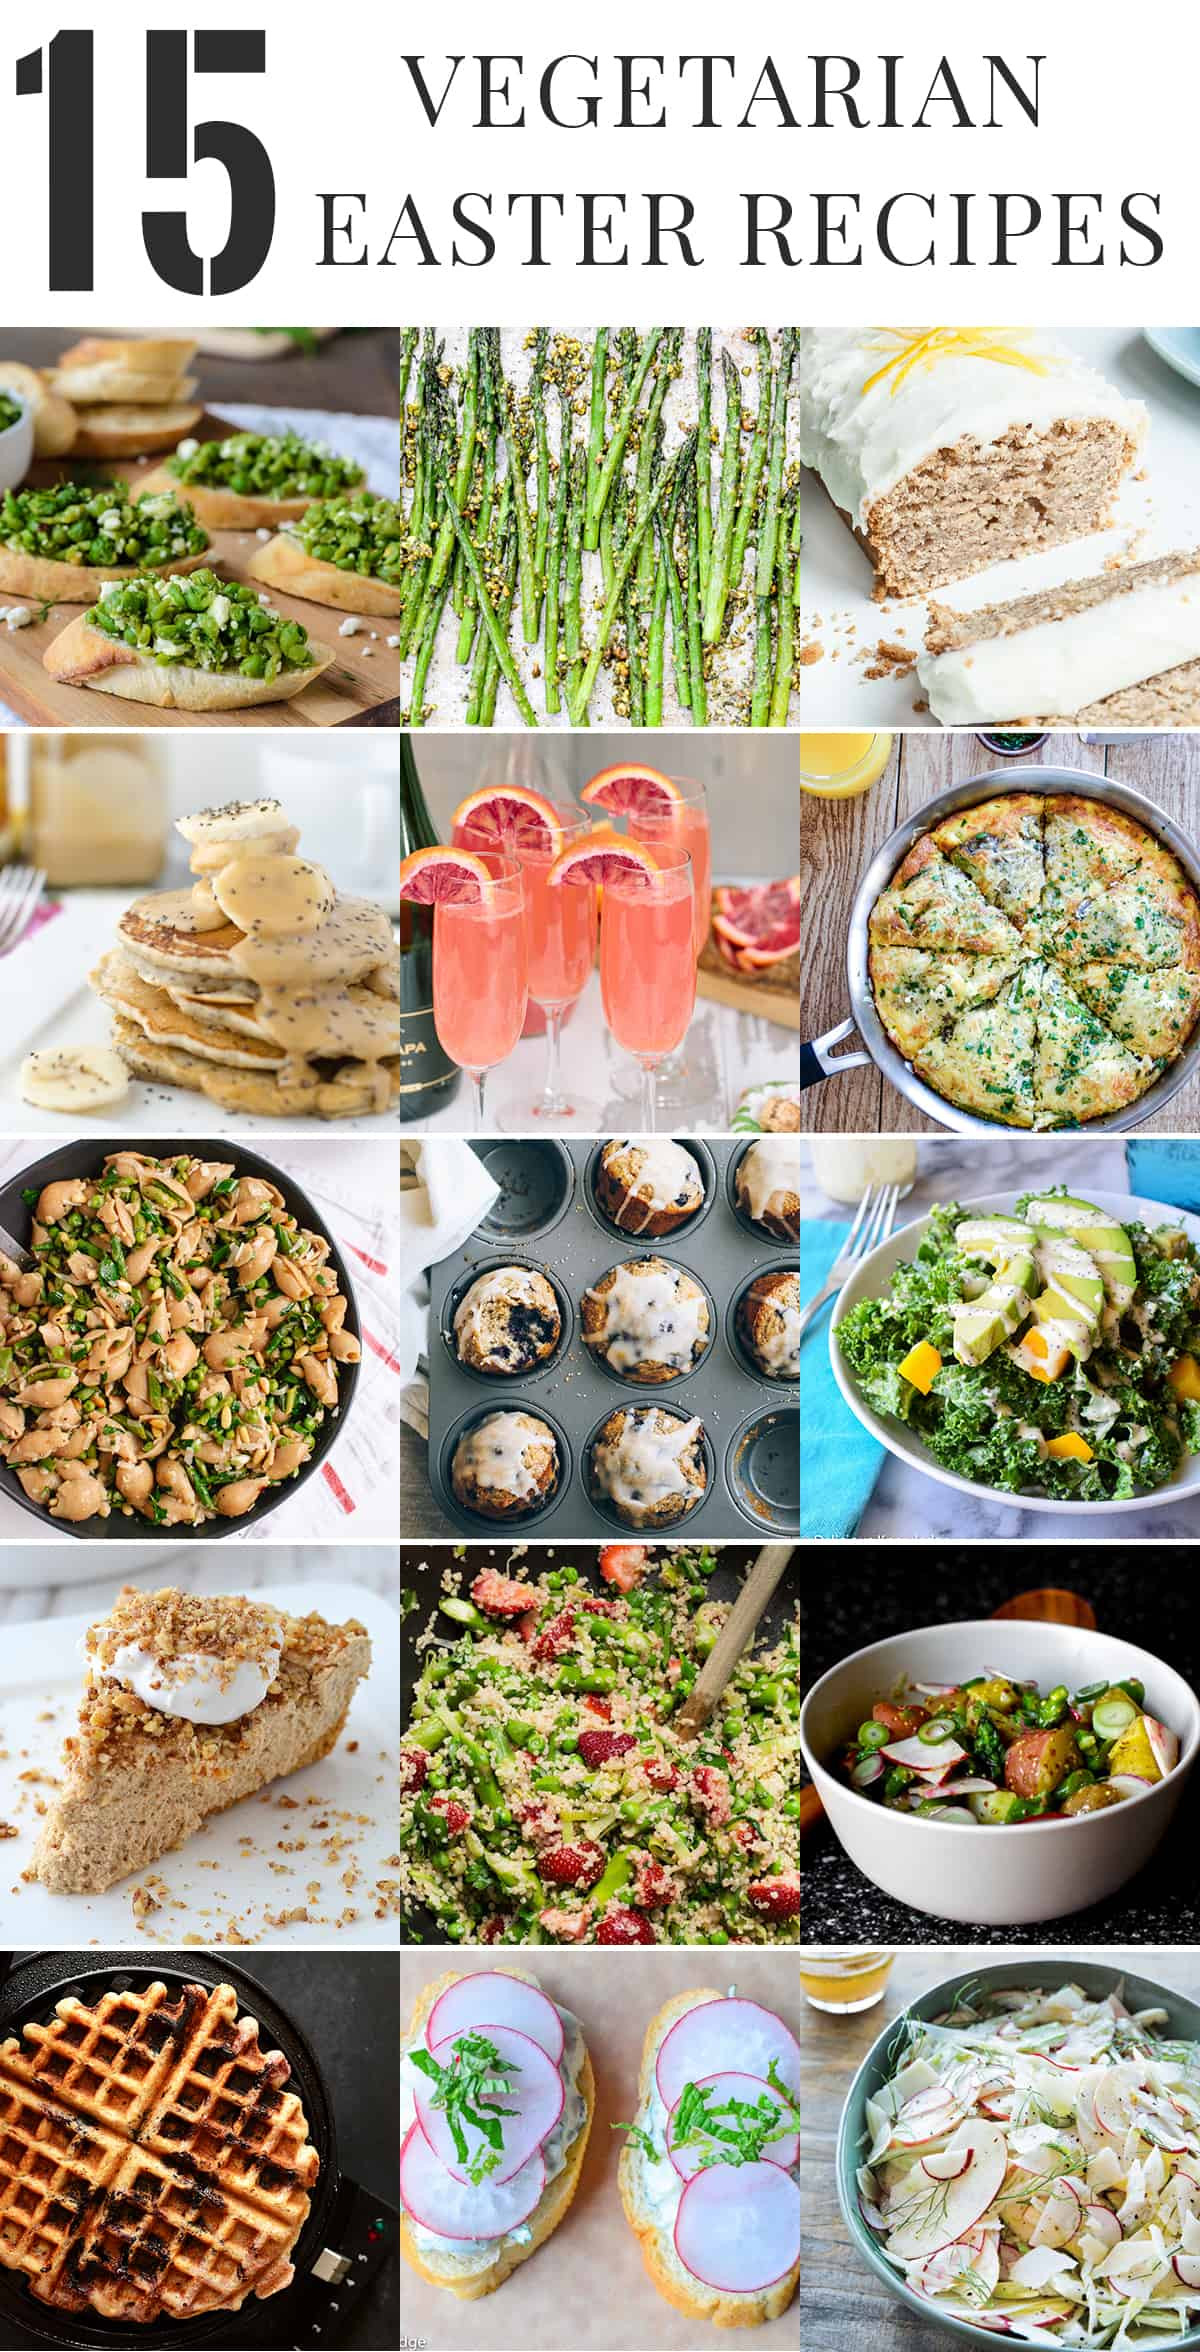 Vegan Easter Dinner Ideas  Healthy Ve arian Easter Recipes Delish Knowledge